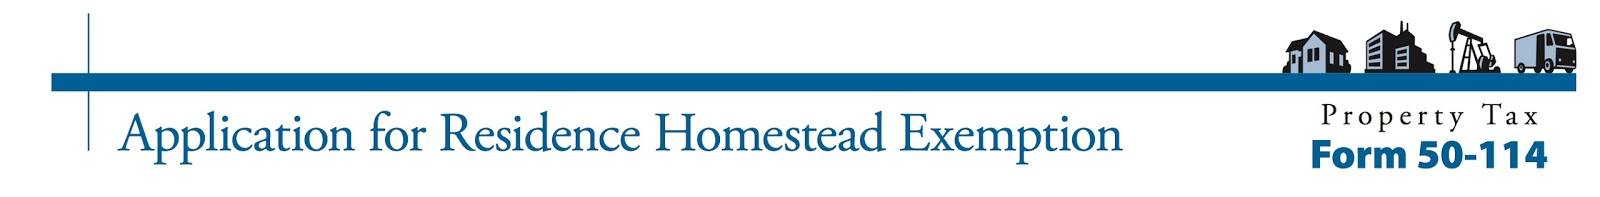 Residence homestead exemptions and other exemptions - Fraud Alert ...